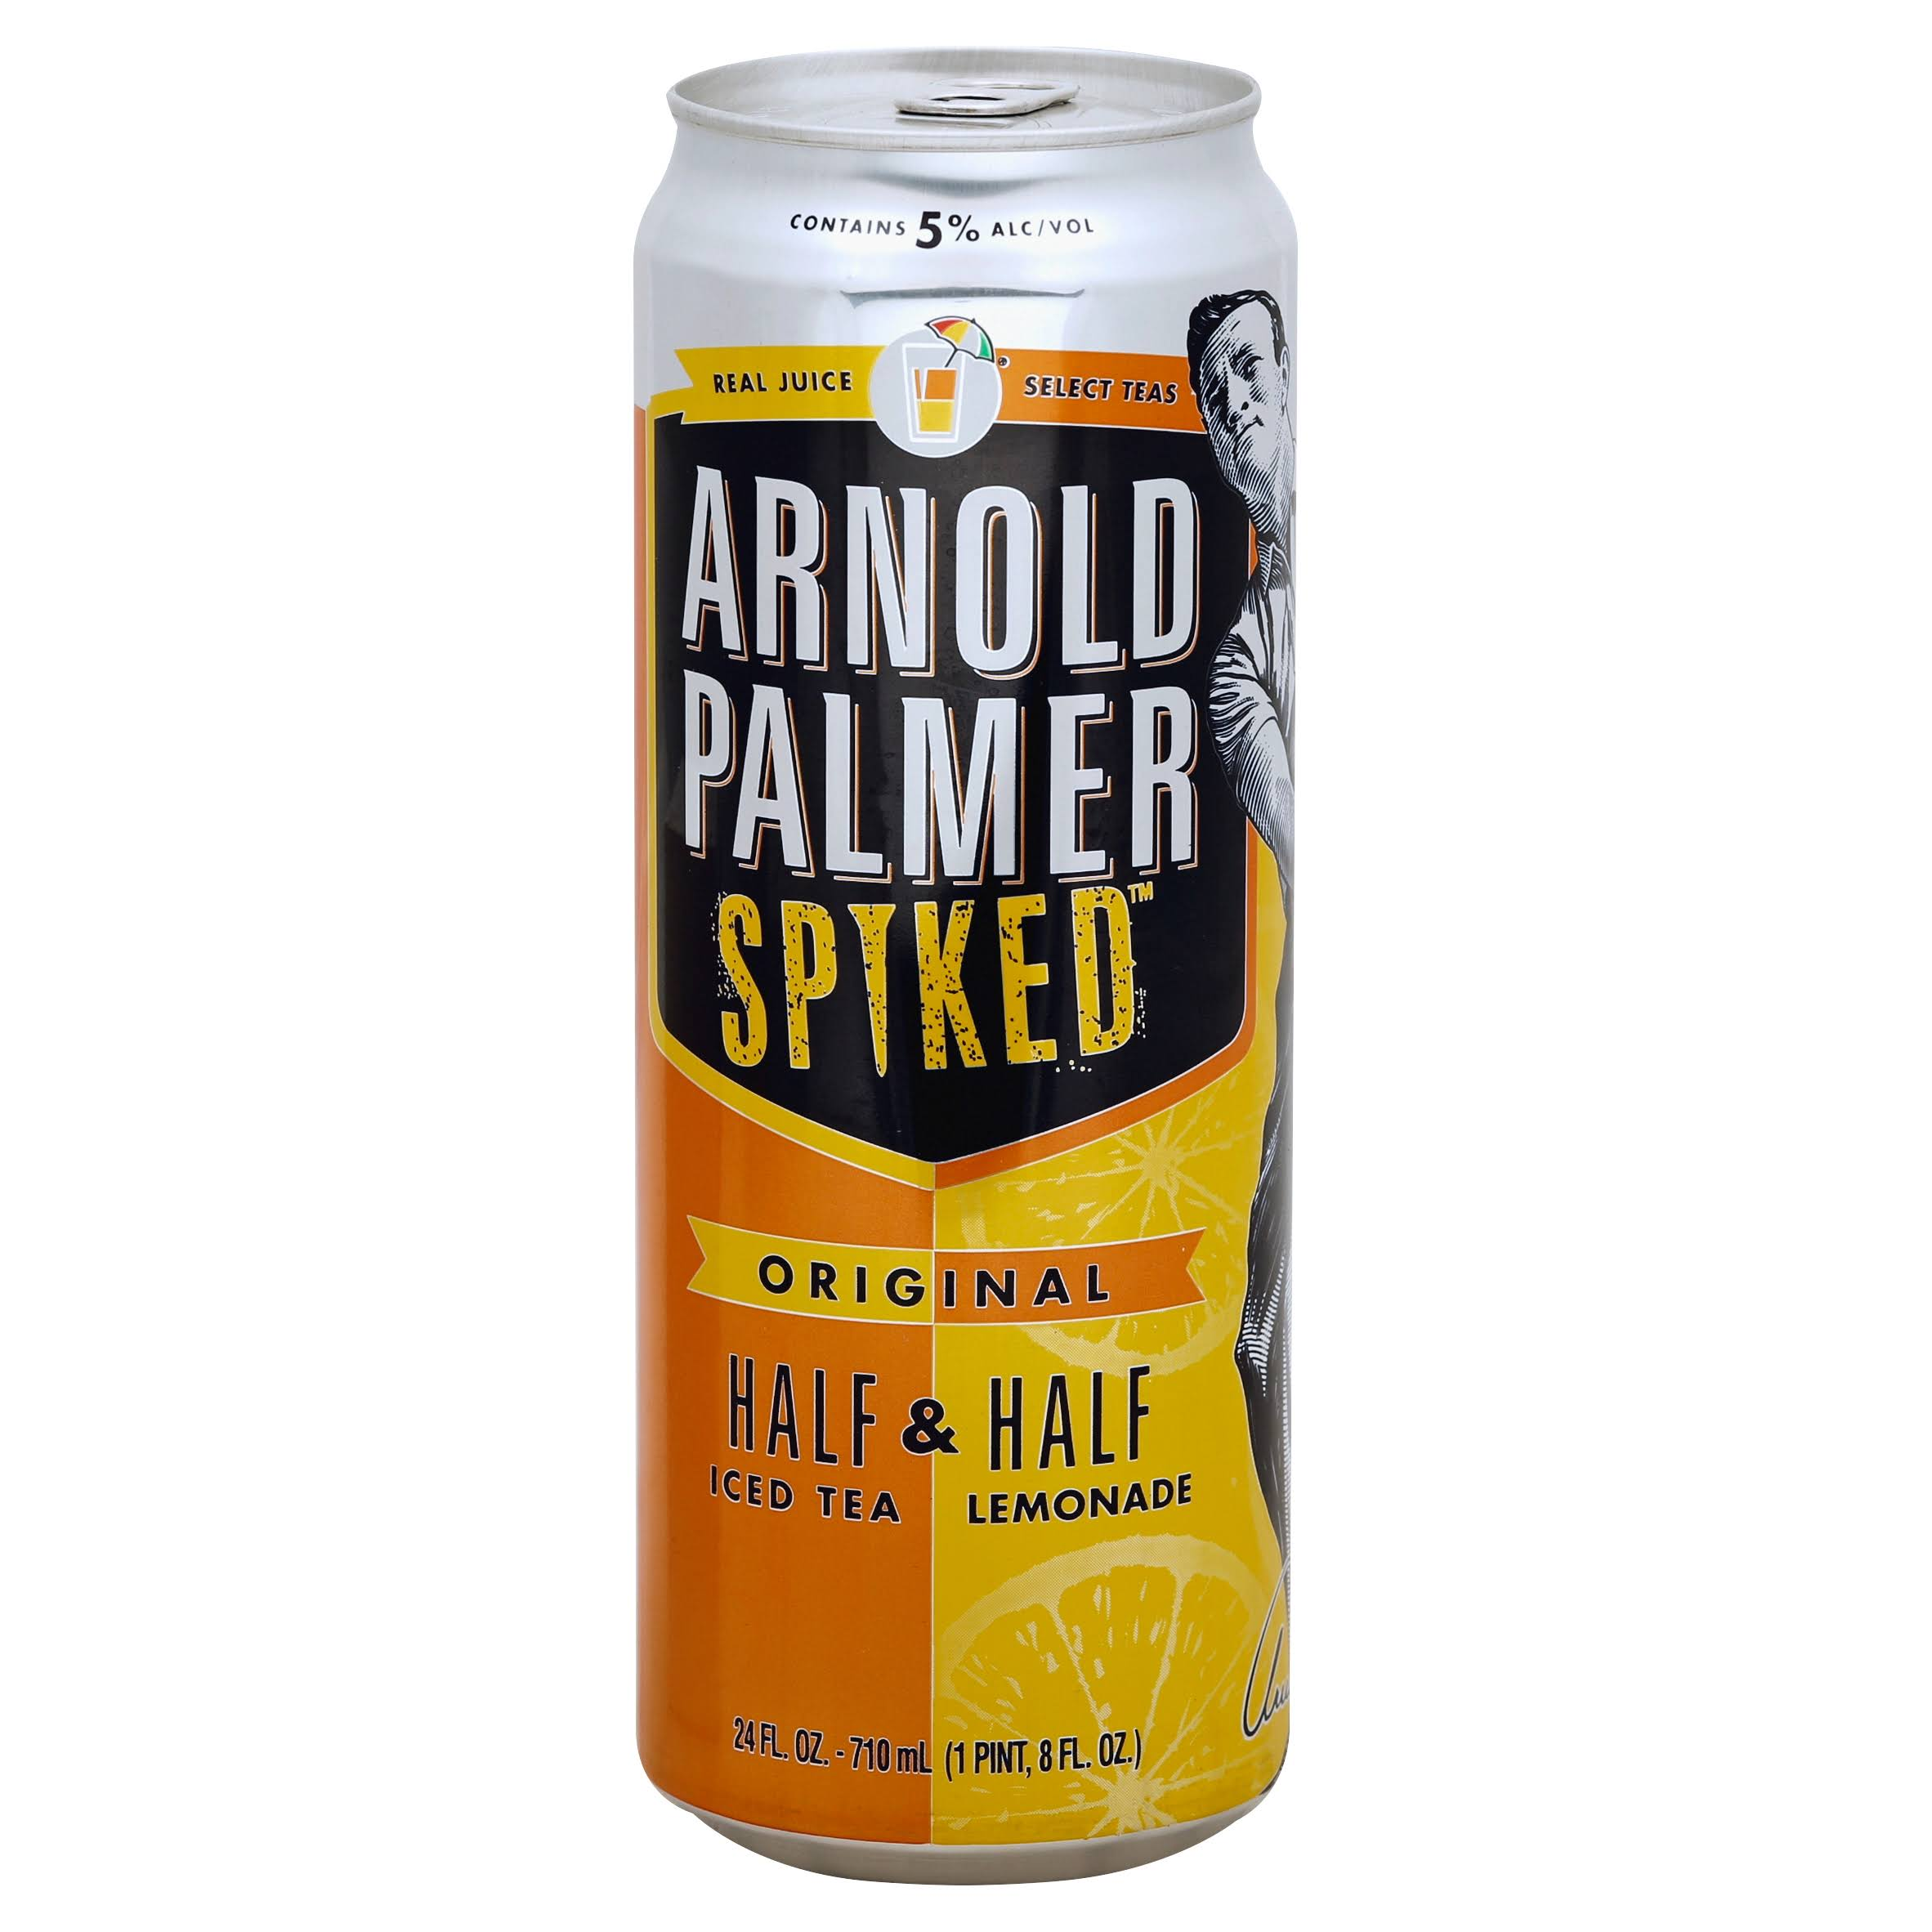 Arnold Palmer Spiked Half & Half, Iced Tea & Lemonade, Original - 24 fl oz